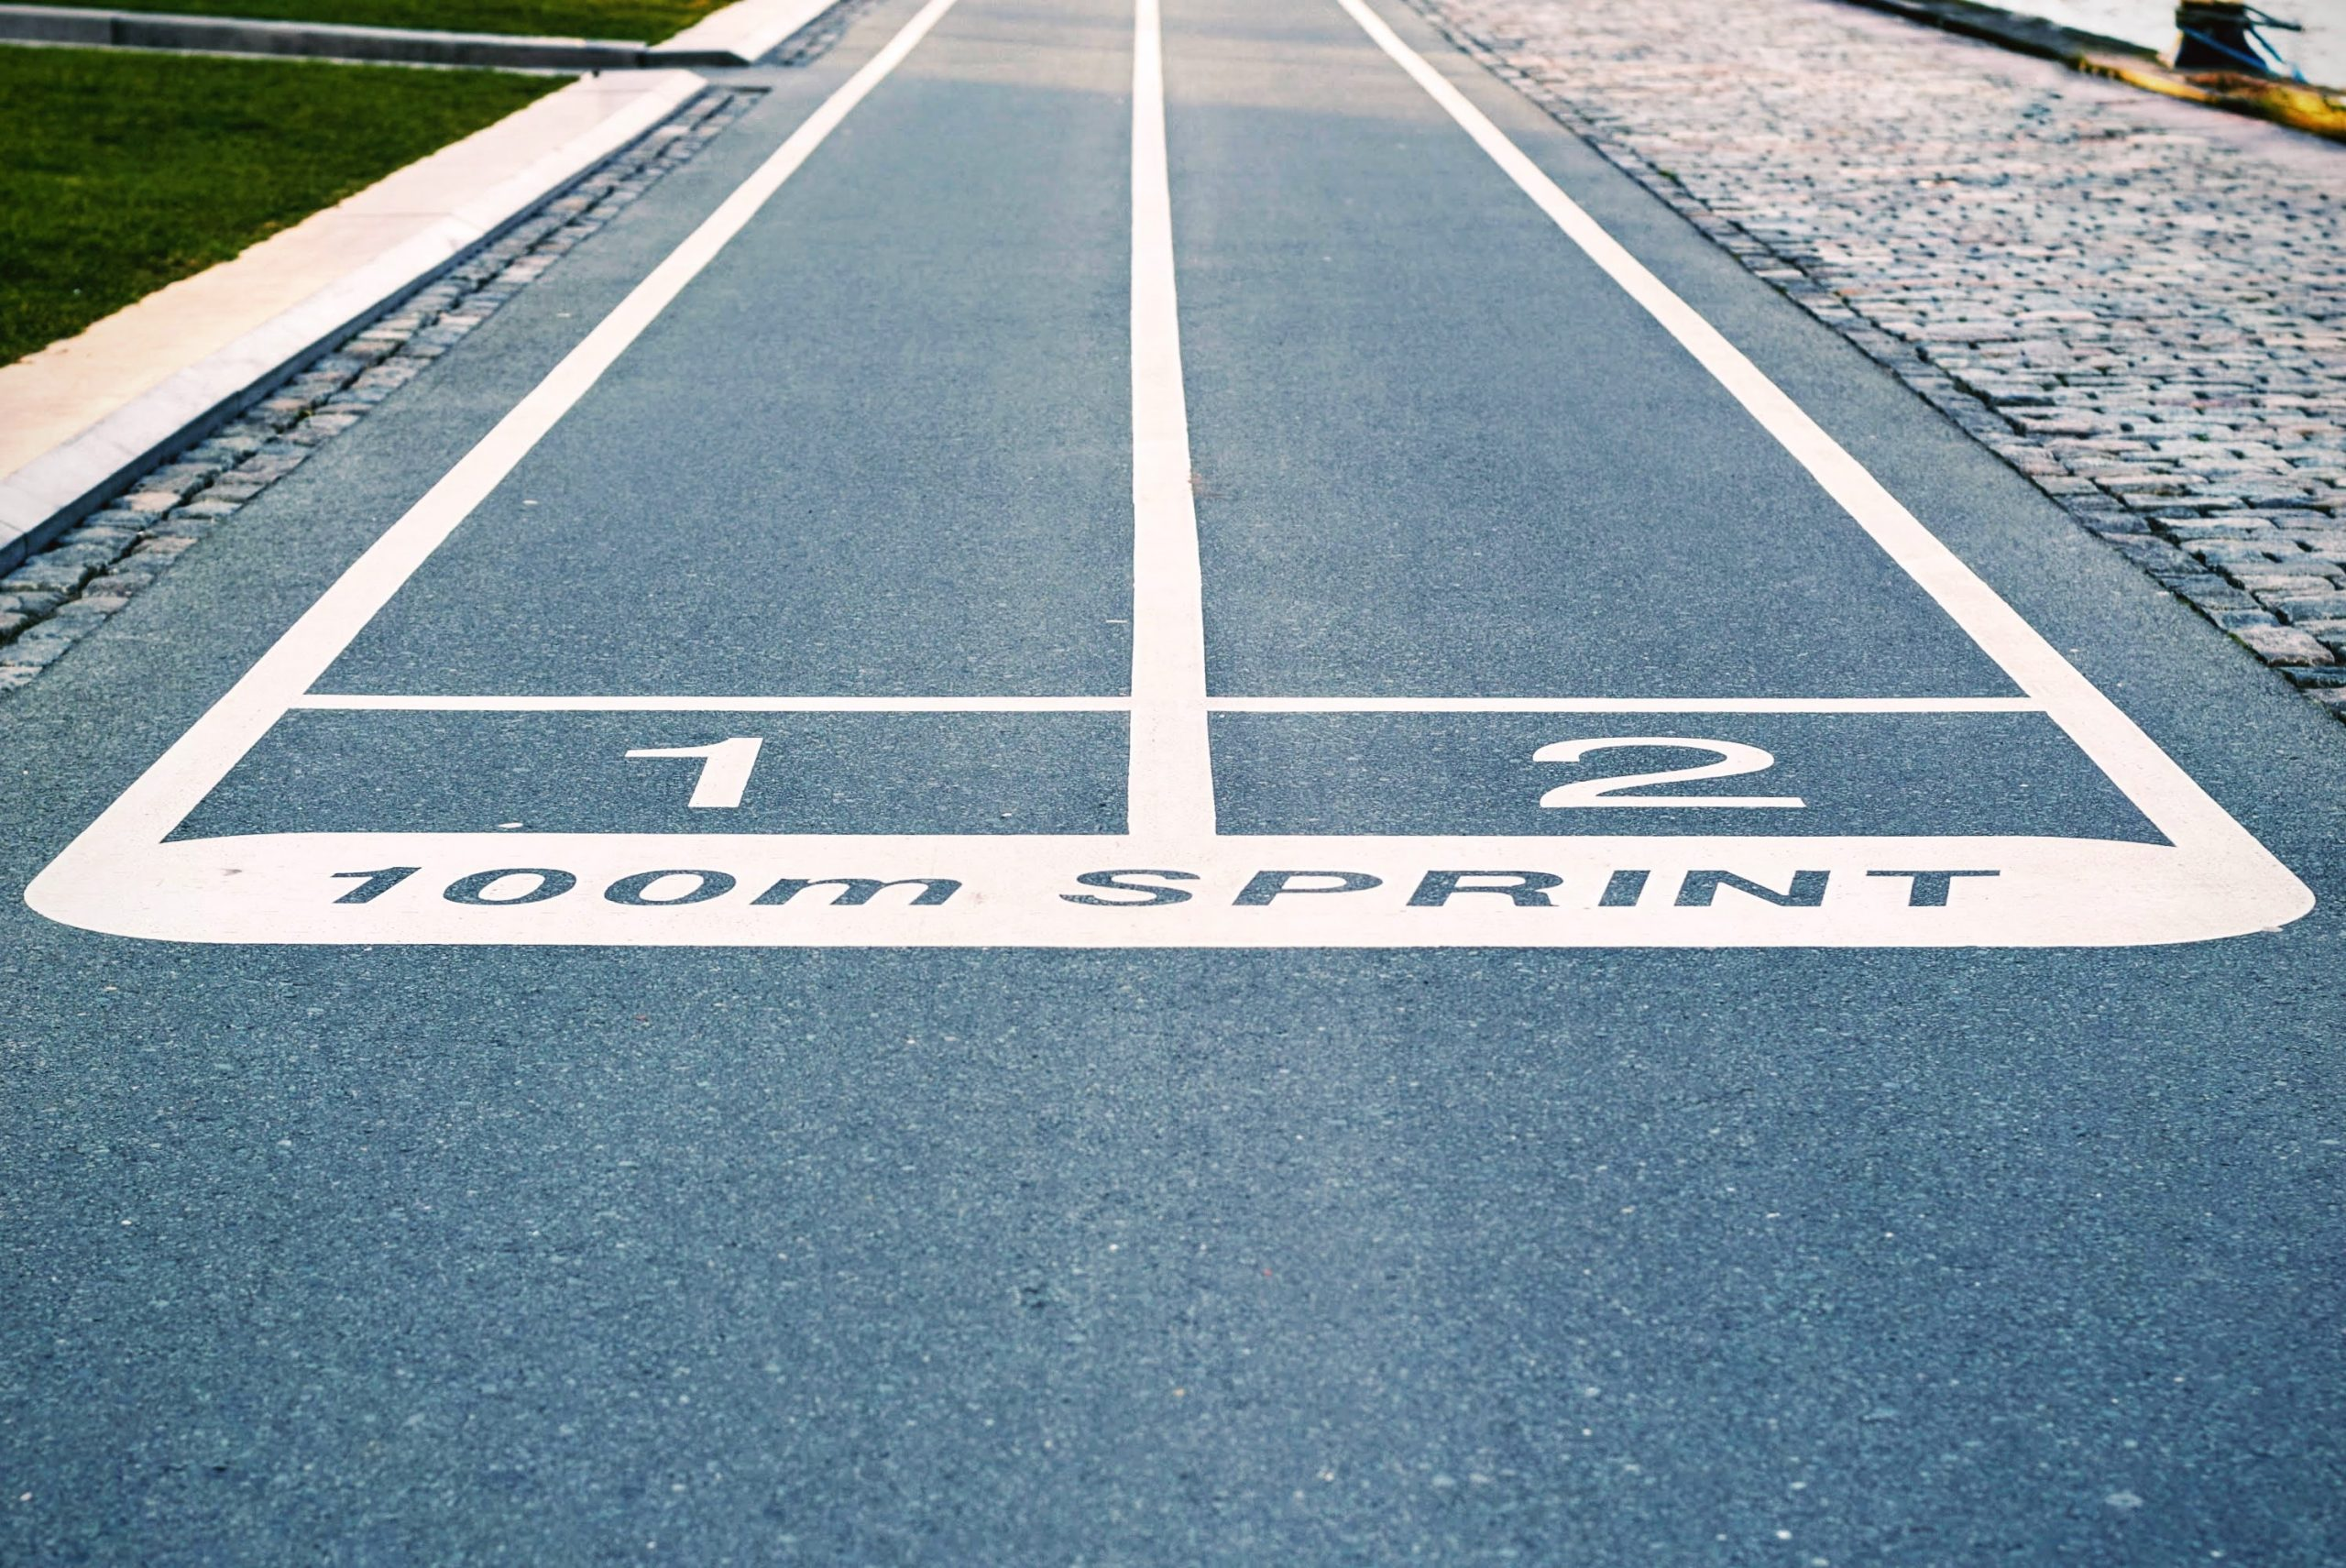 Starting point for two lanes on a track